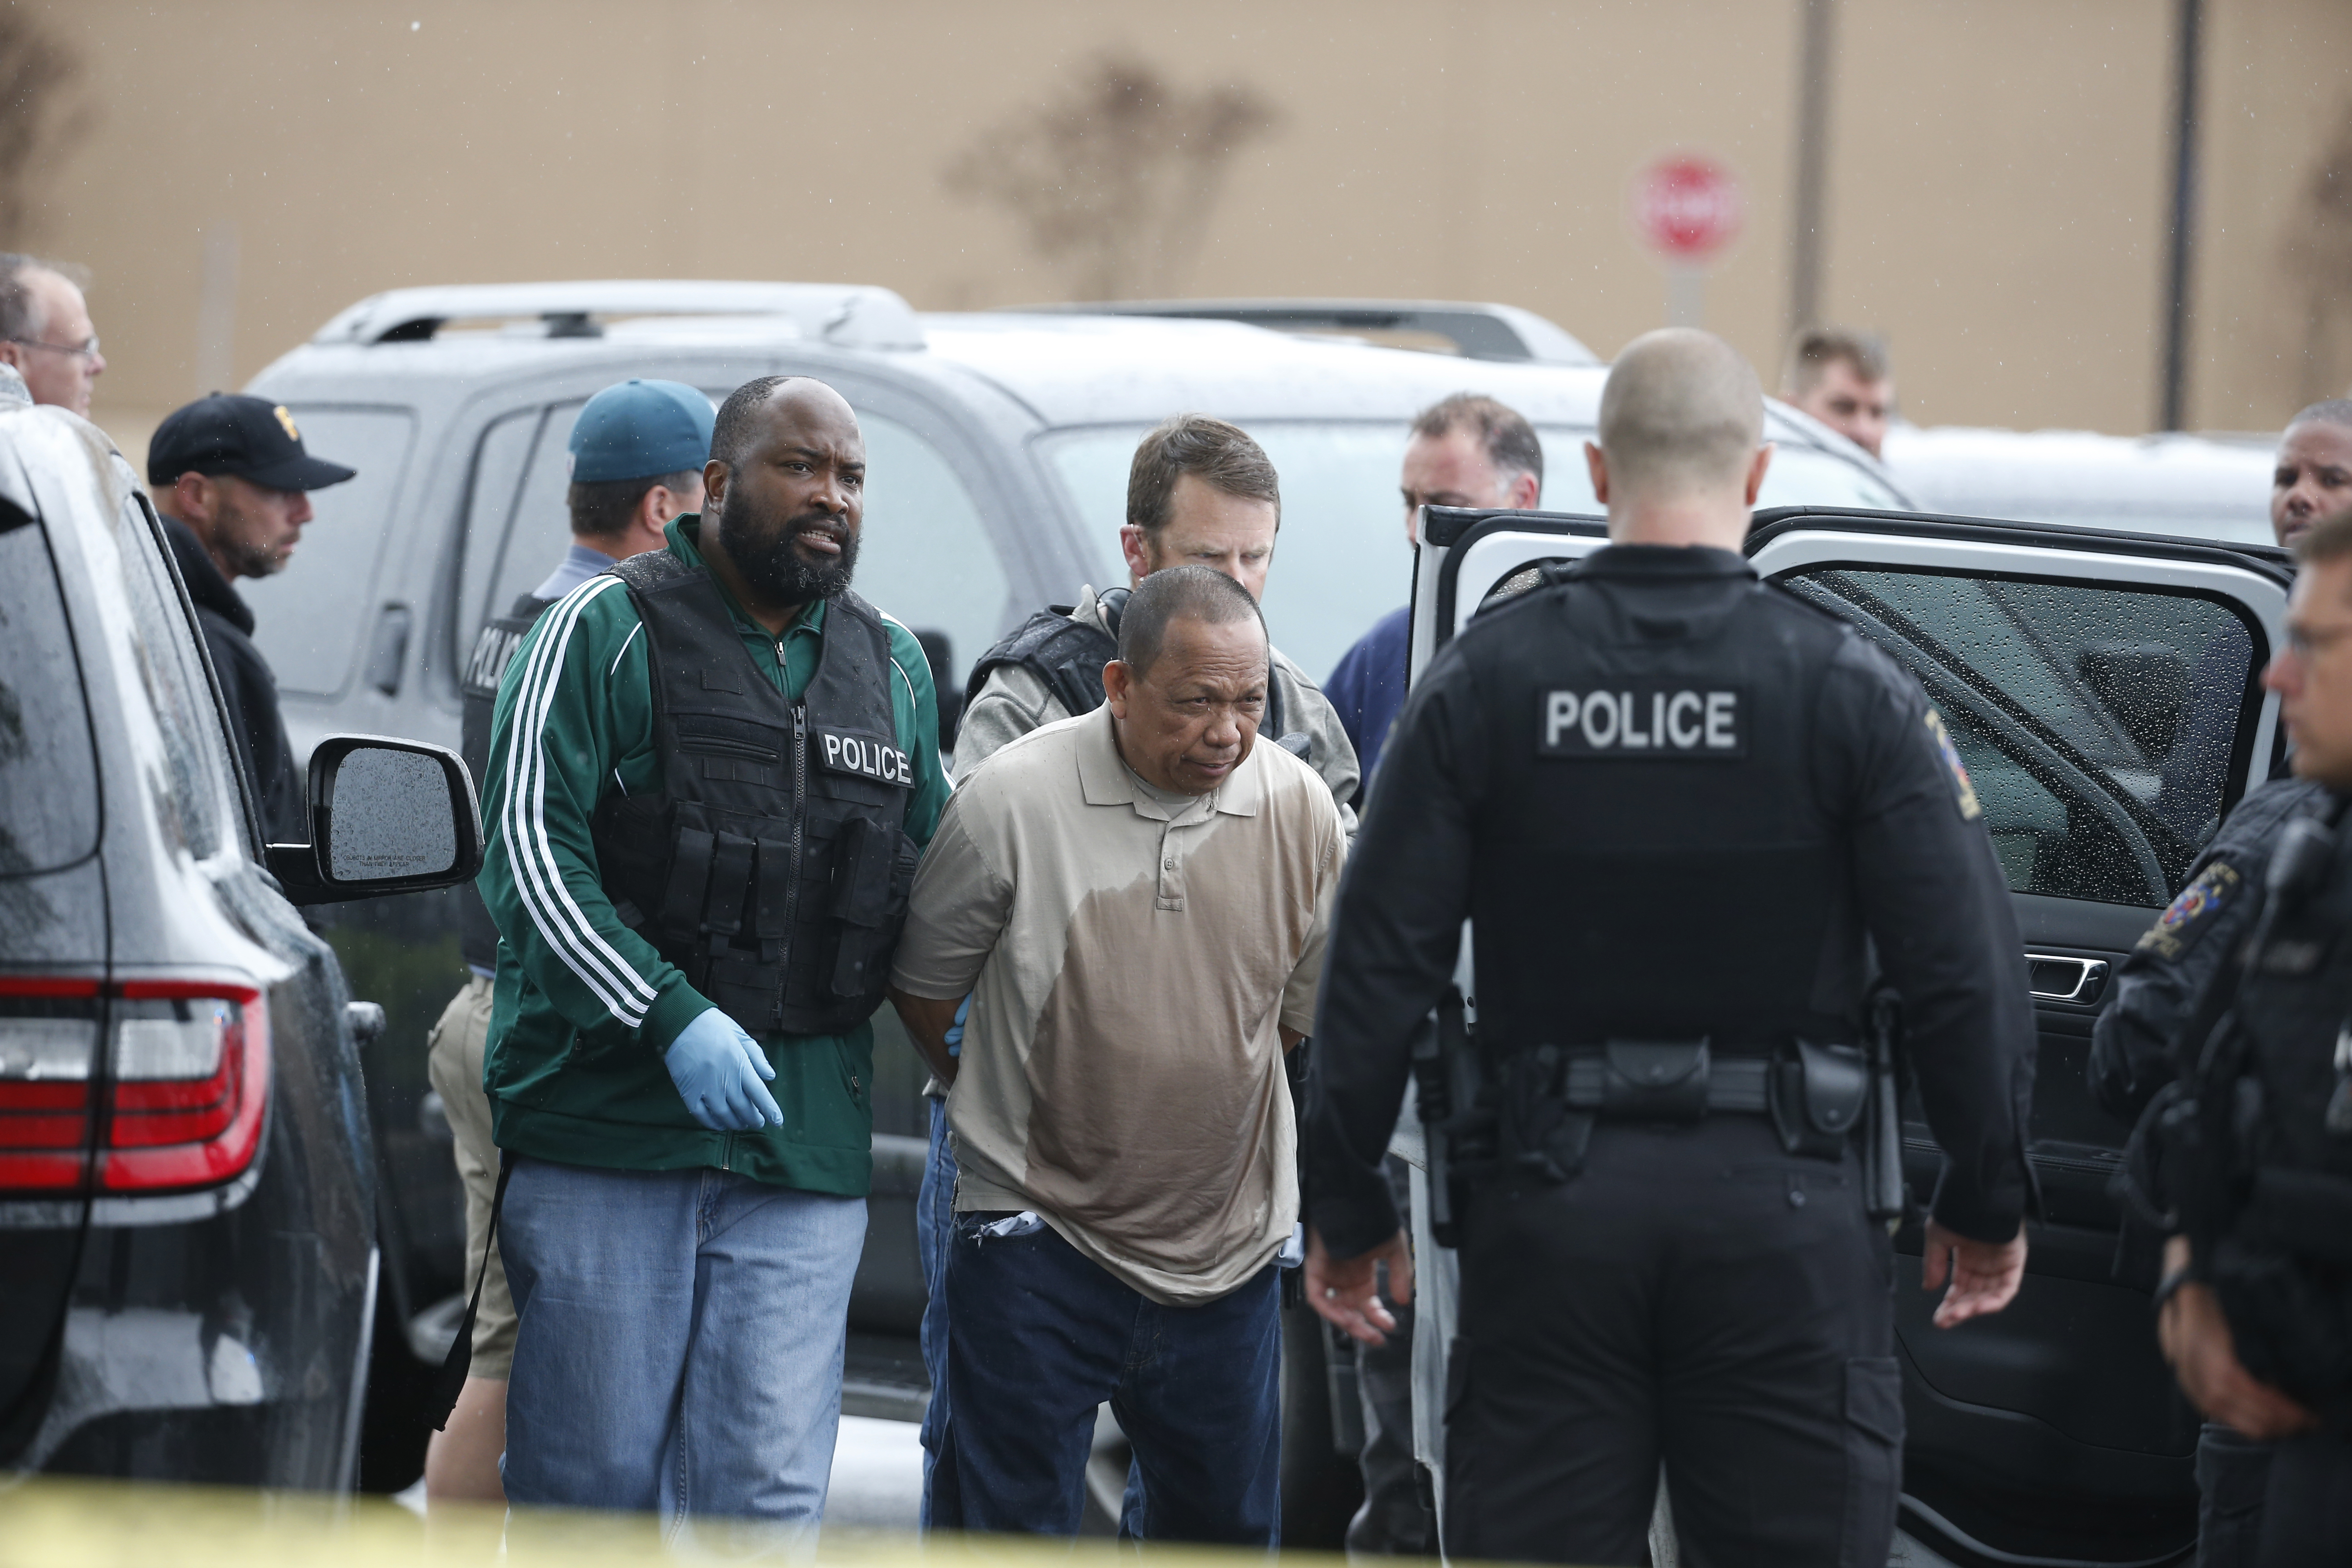 Police: no remorse from man charged in shooting spree